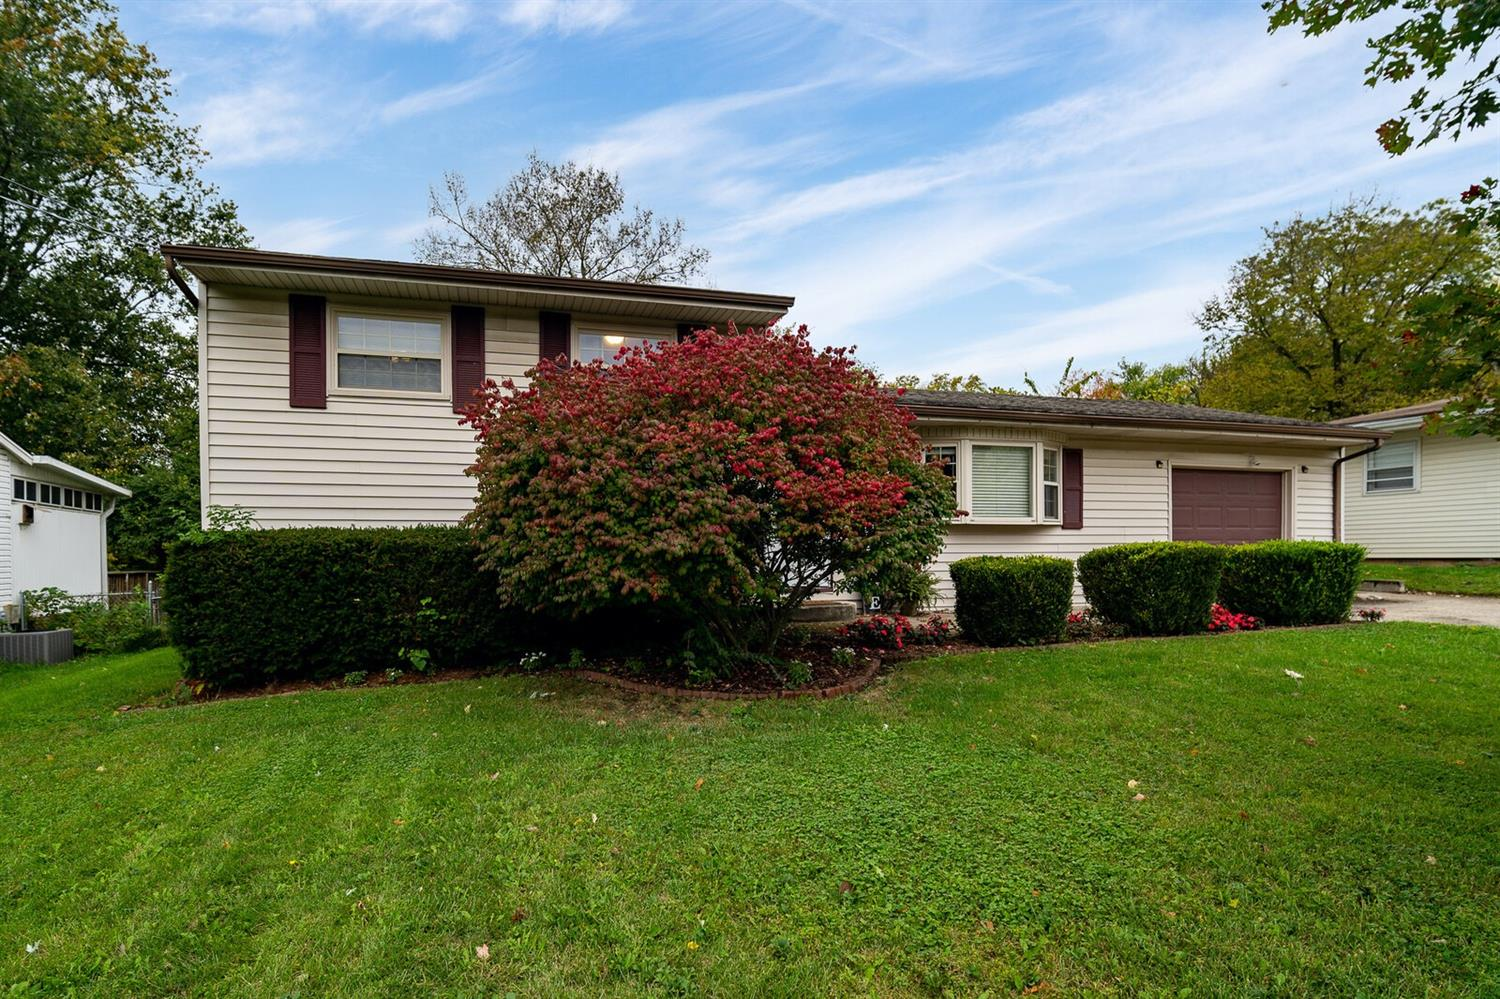 367 Timrick Place, Monroe, Ohio 45050, 3 Bedrooms Bedrooms, 8 Rooms Rooms,1 BathroomBathrooms,Single Family Residence,For Sale,Timrick,1720442